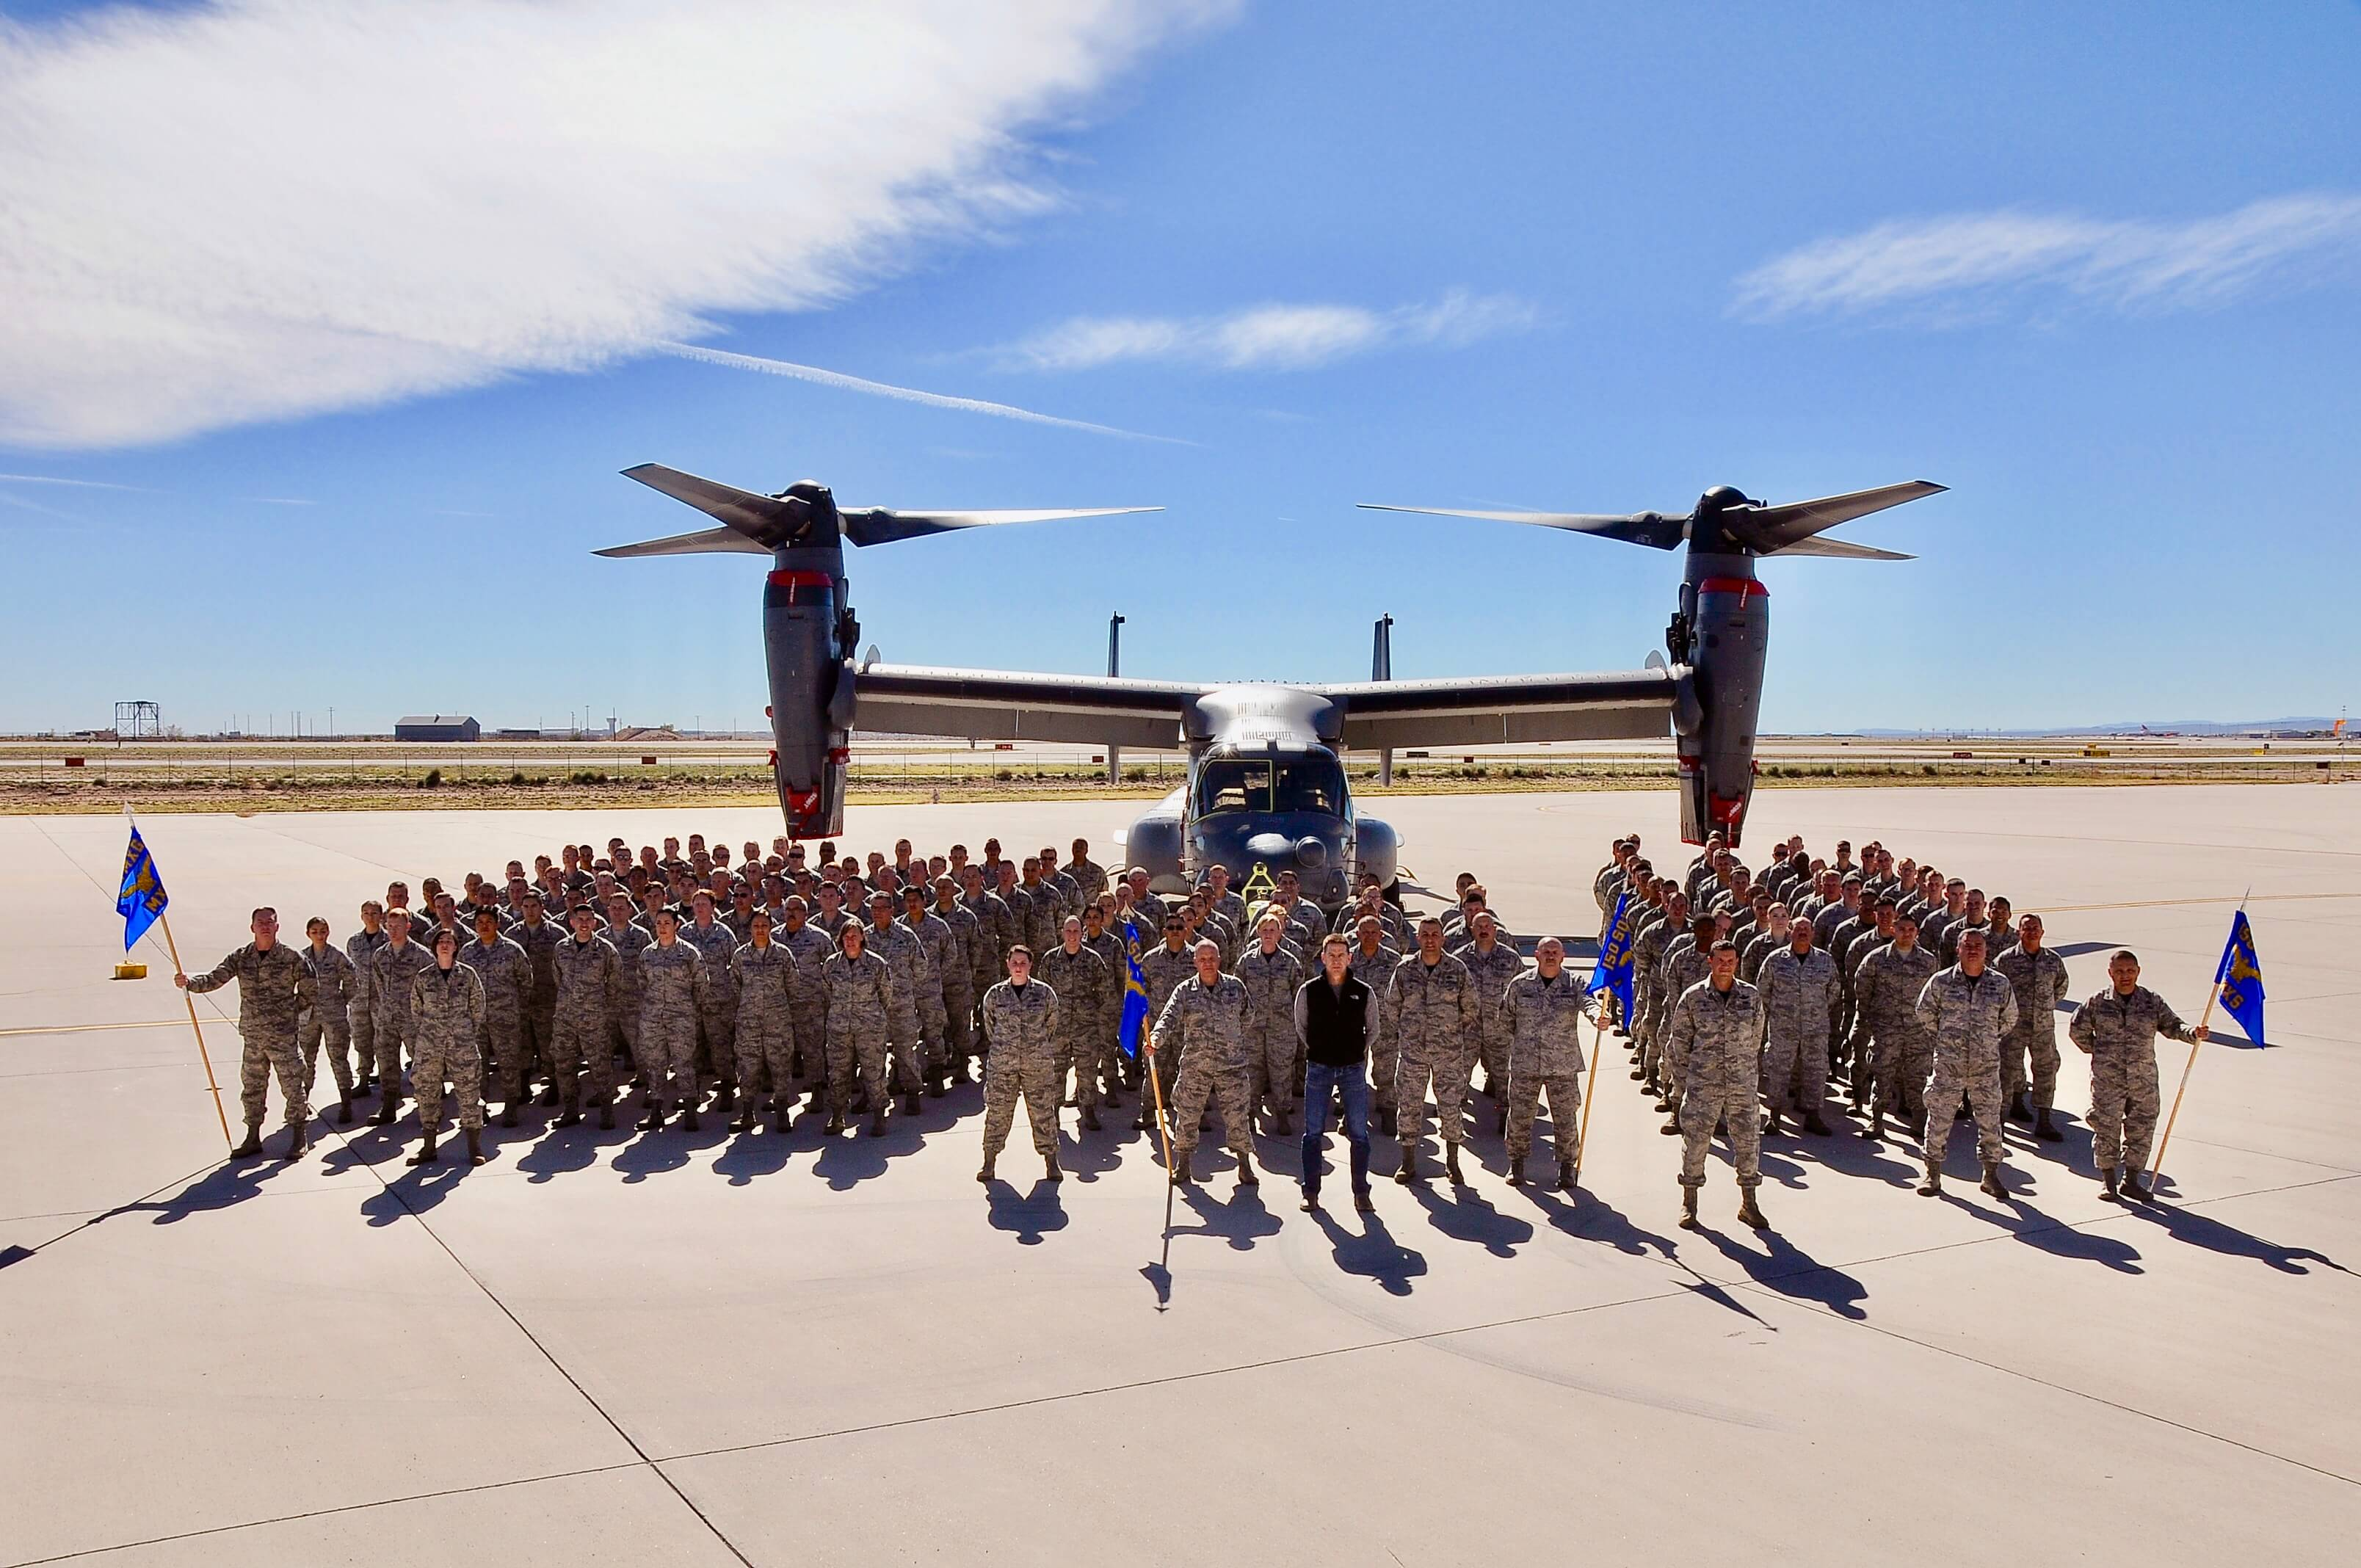 NM Air National Guard Group Photo